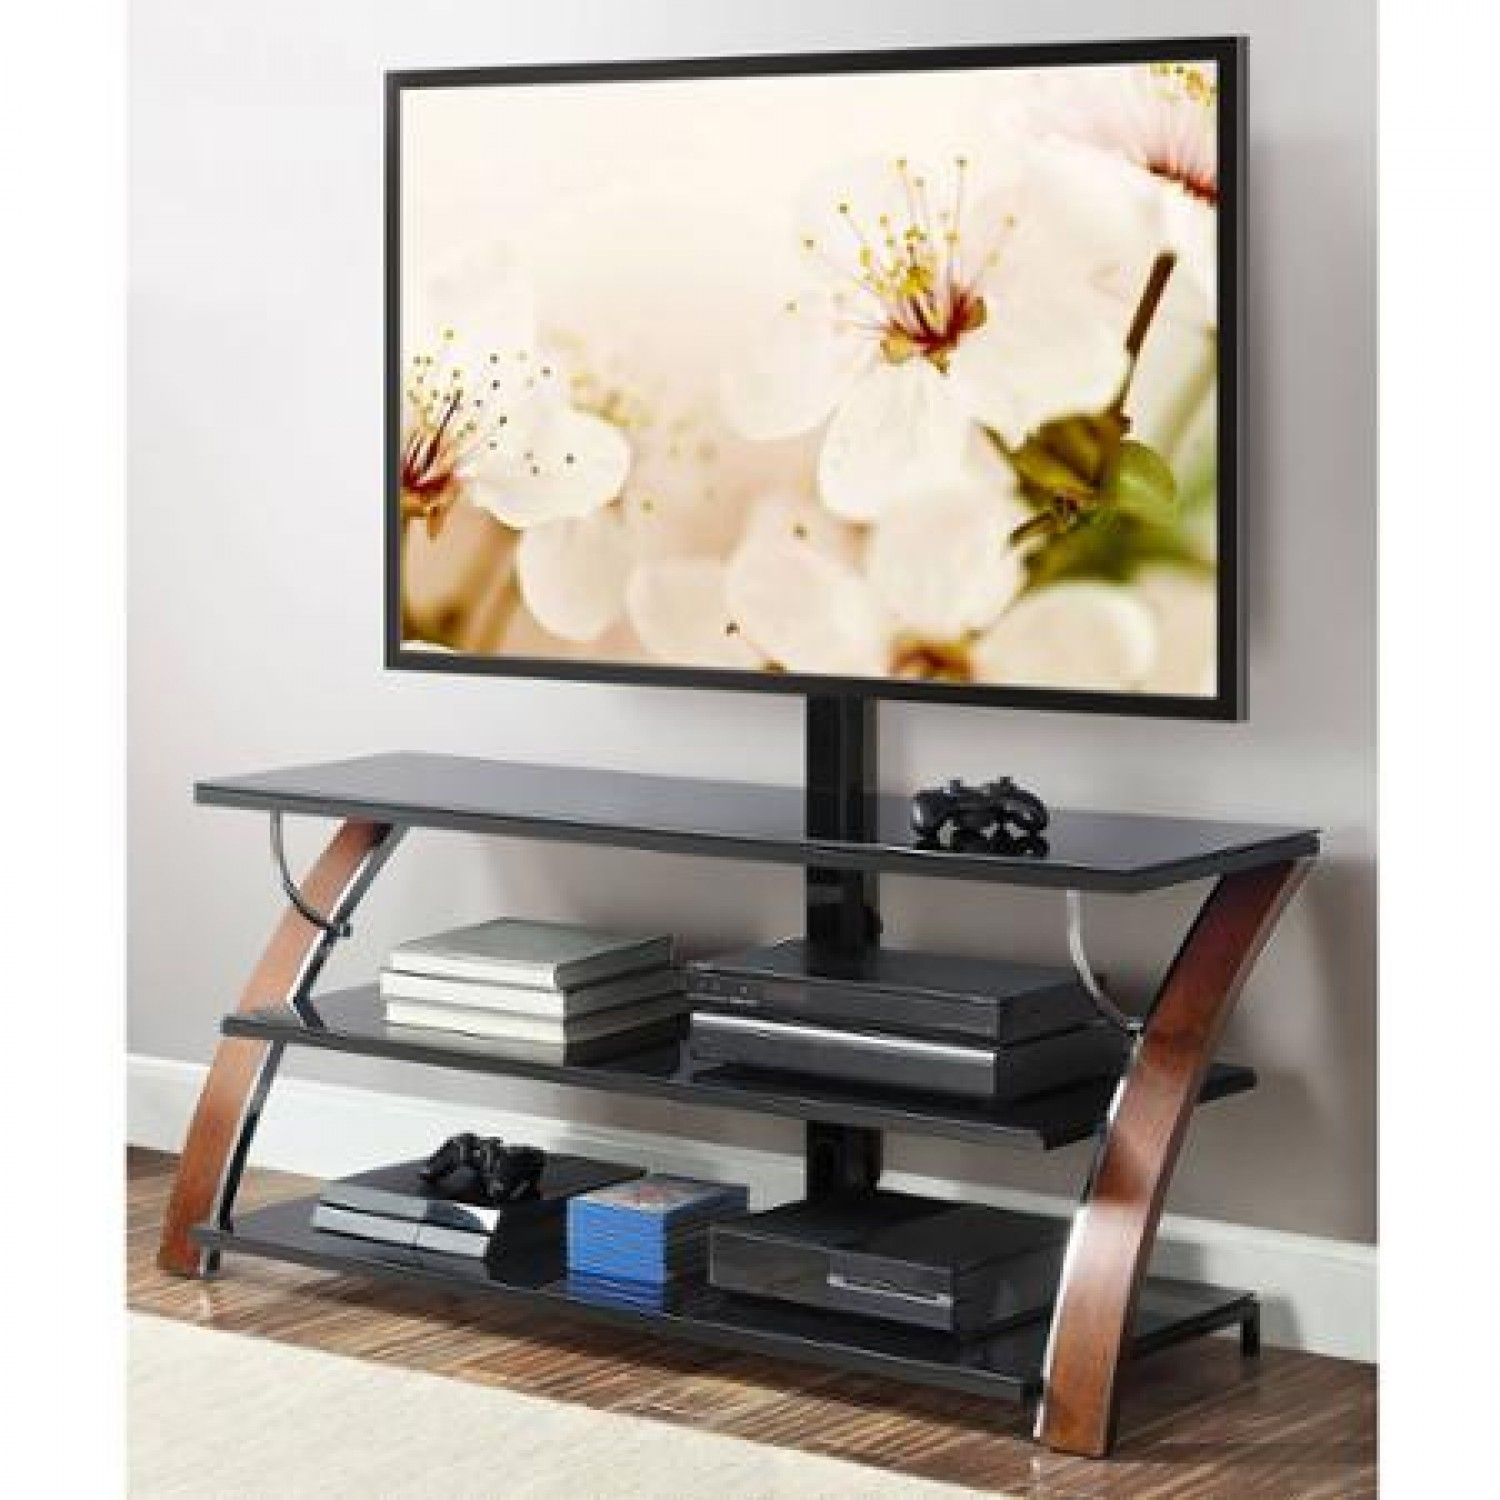 Charming whalen tv stand for furniture accessories design with whalen 3-in-1 tv stand